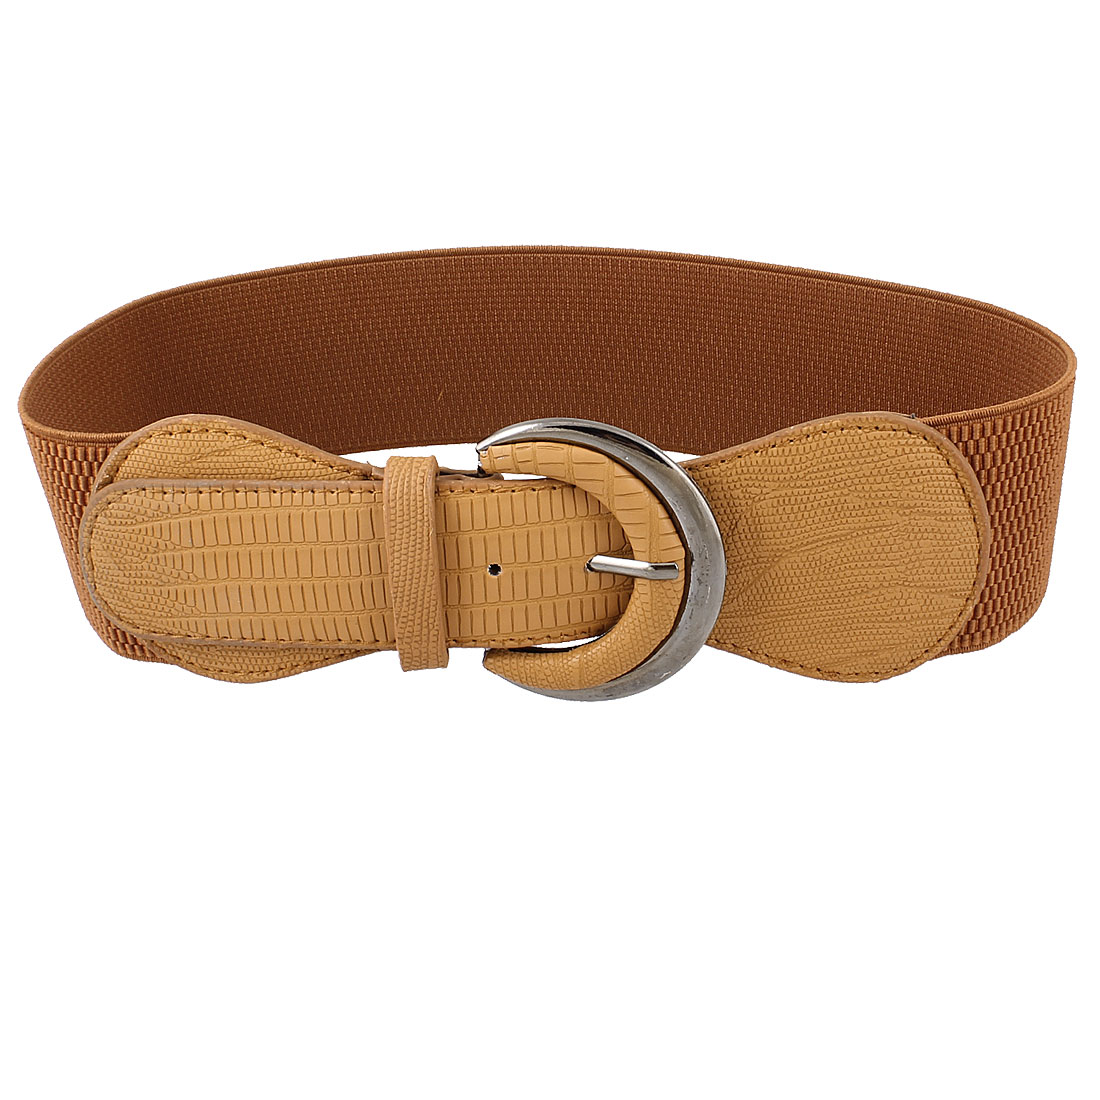 Lady Textured Pattern Single Prong Faux Leather Stretchy Waist Belt Brown